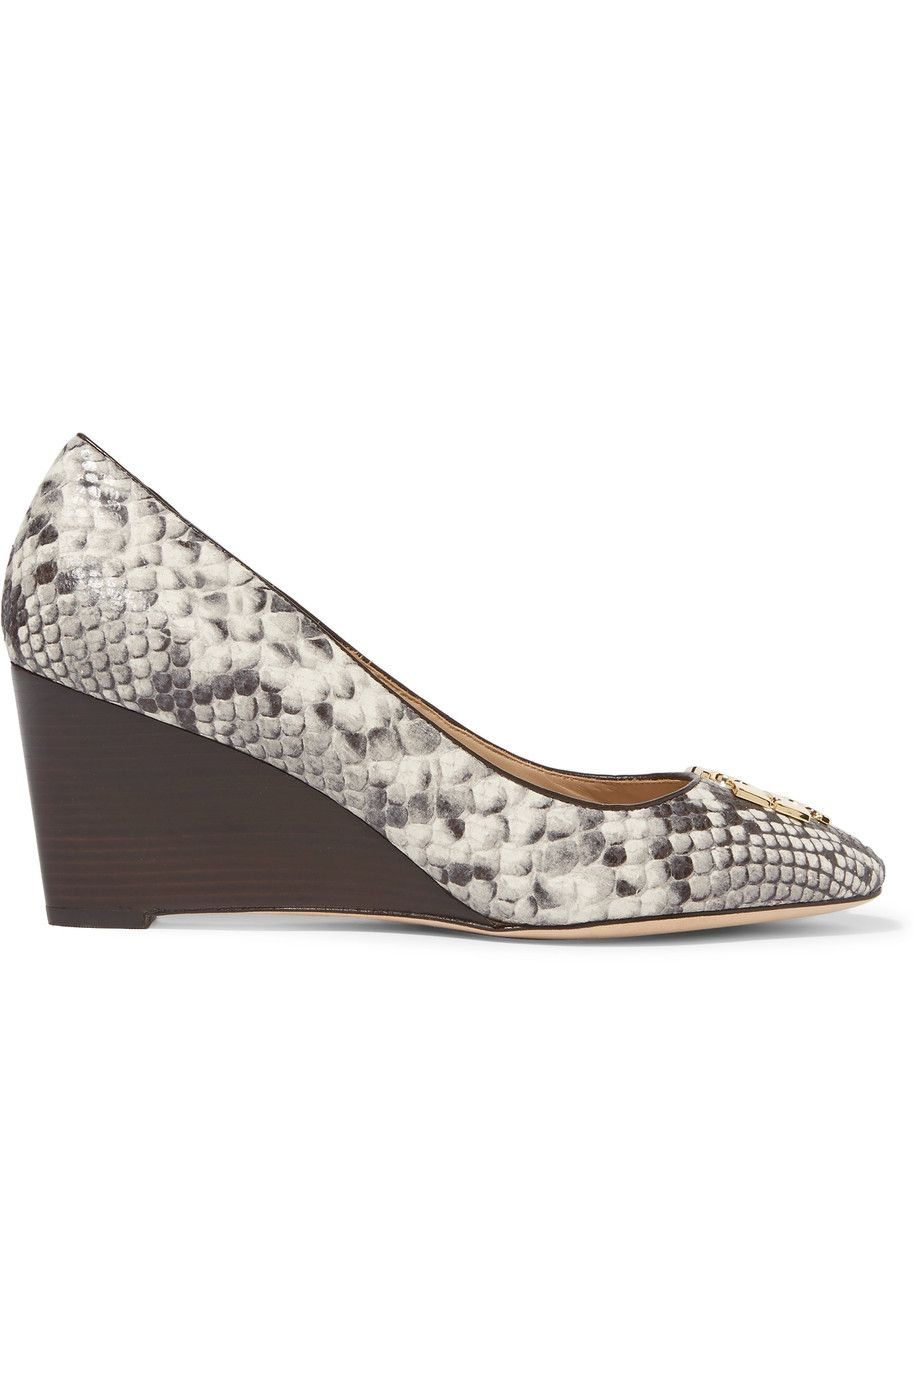 fd6a123ee03ec TORY BURCH Raleigh snake-effect leather wedge pumps.  toryburch  shoes   pumps